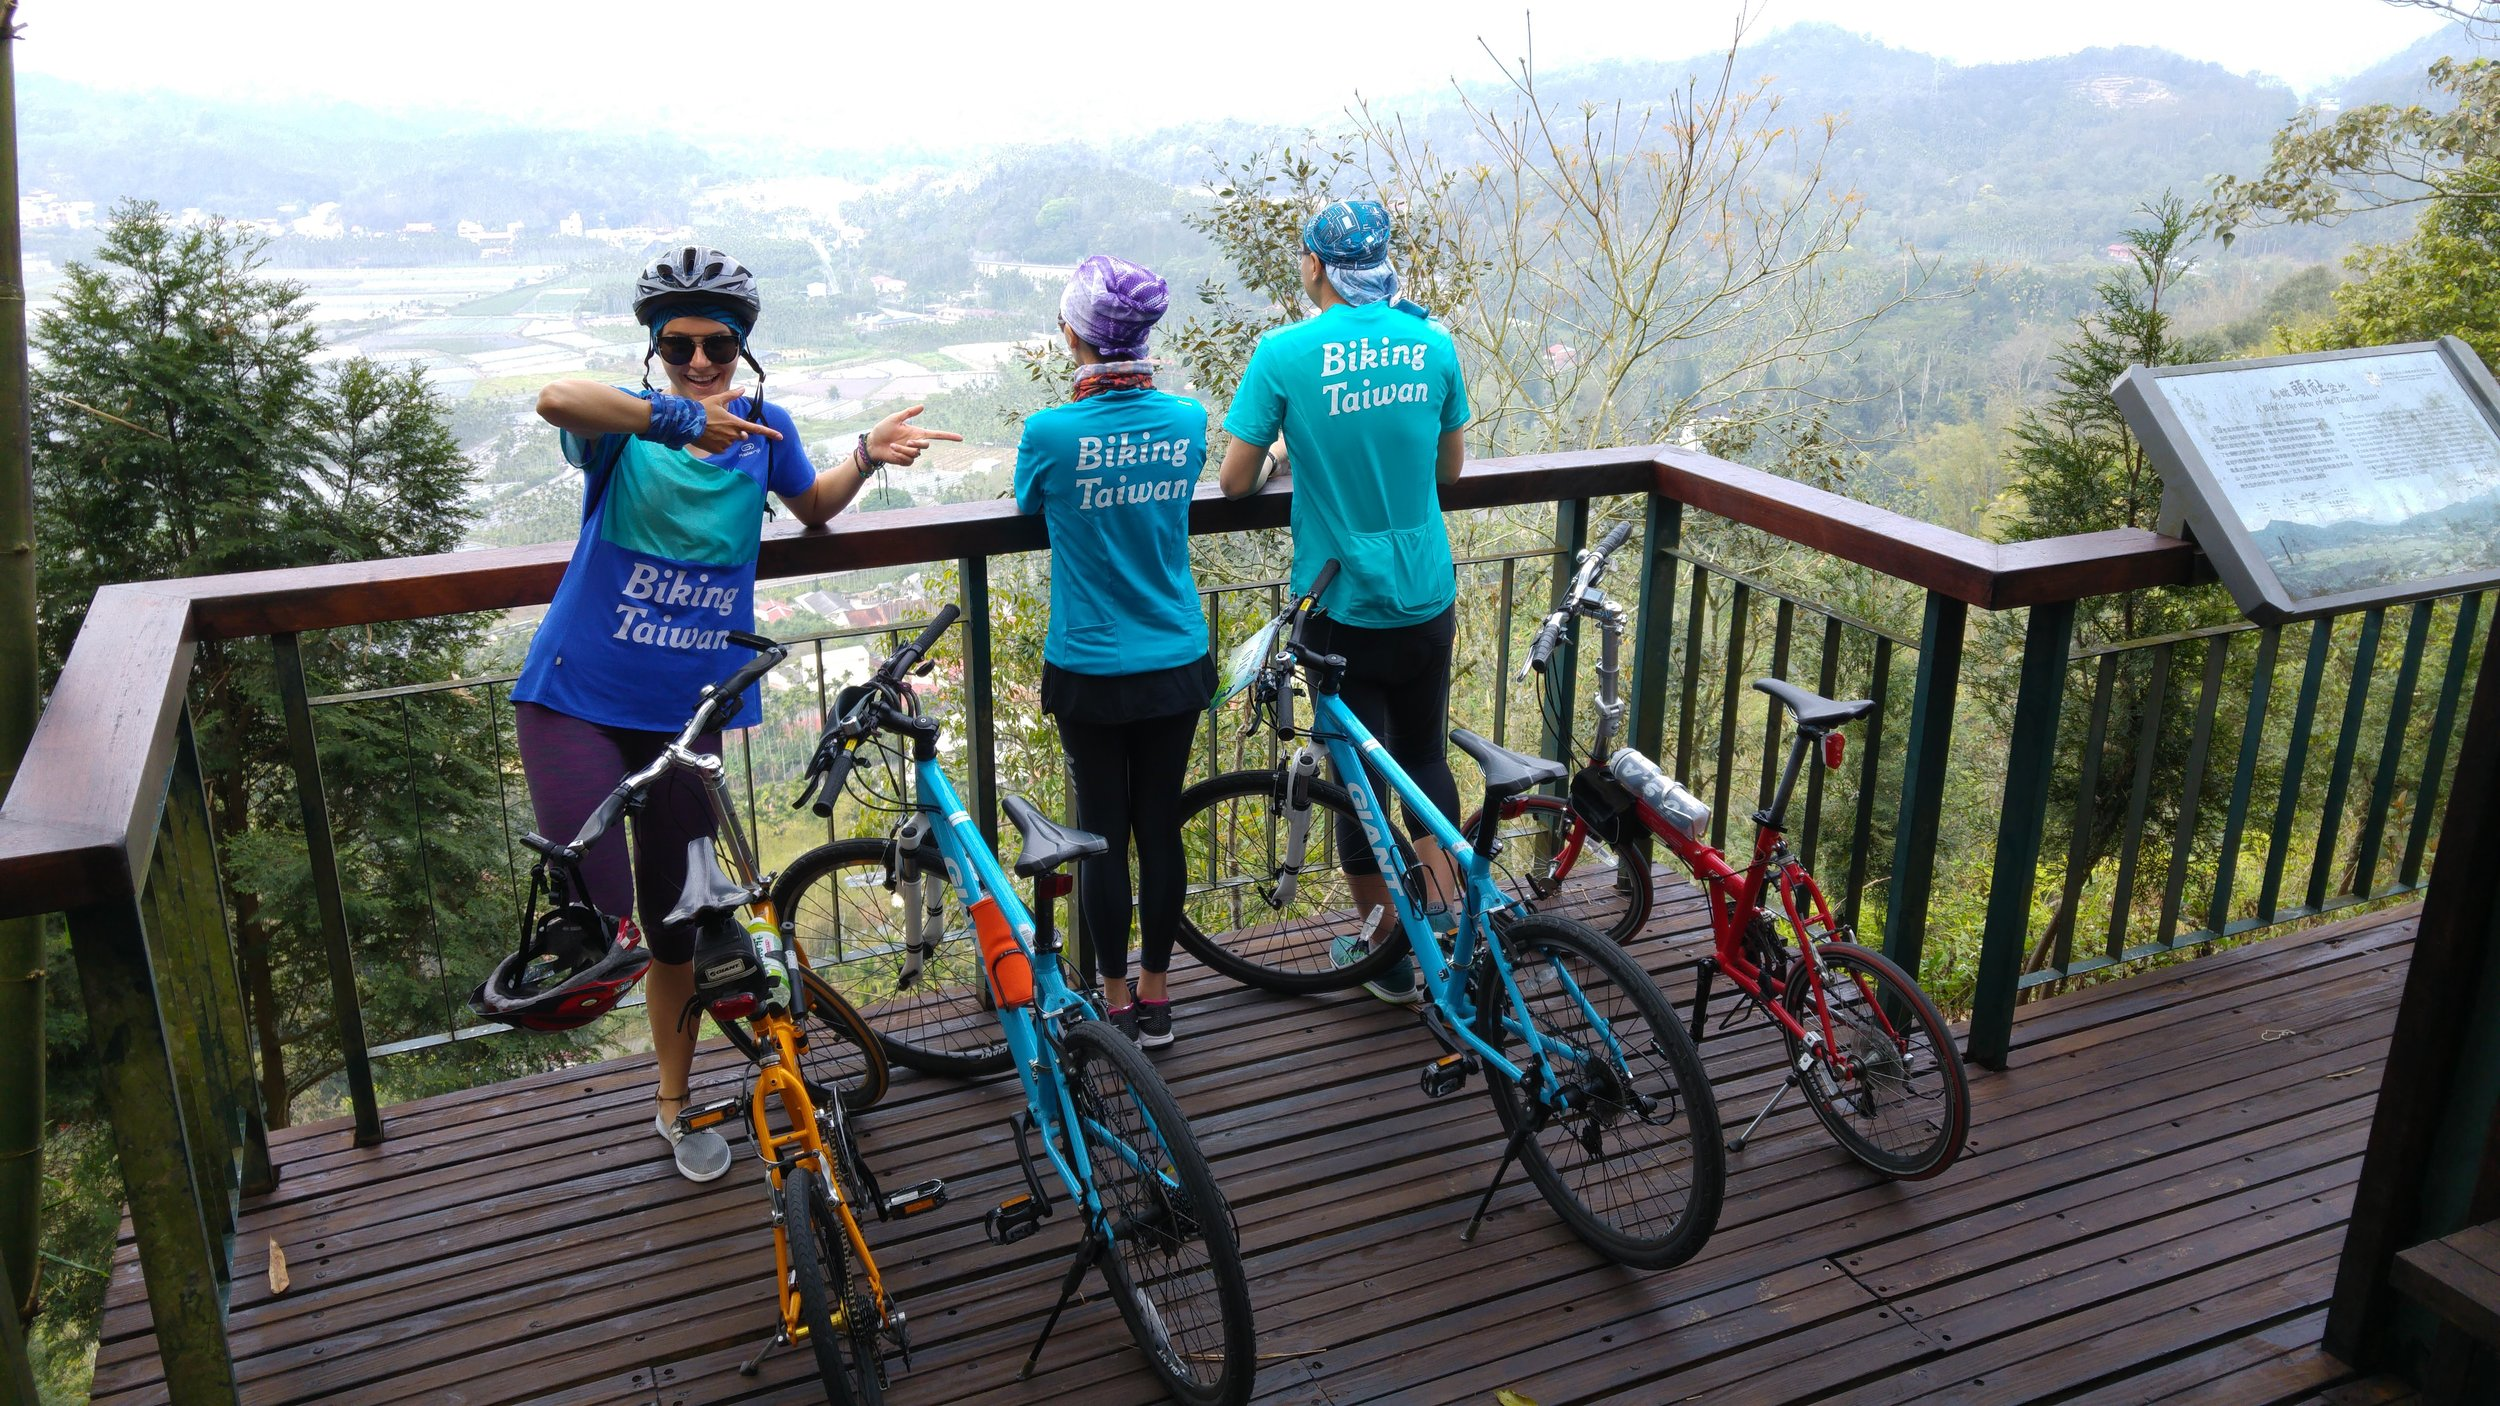 You can also have fun with Biking Taiwan TEAM!